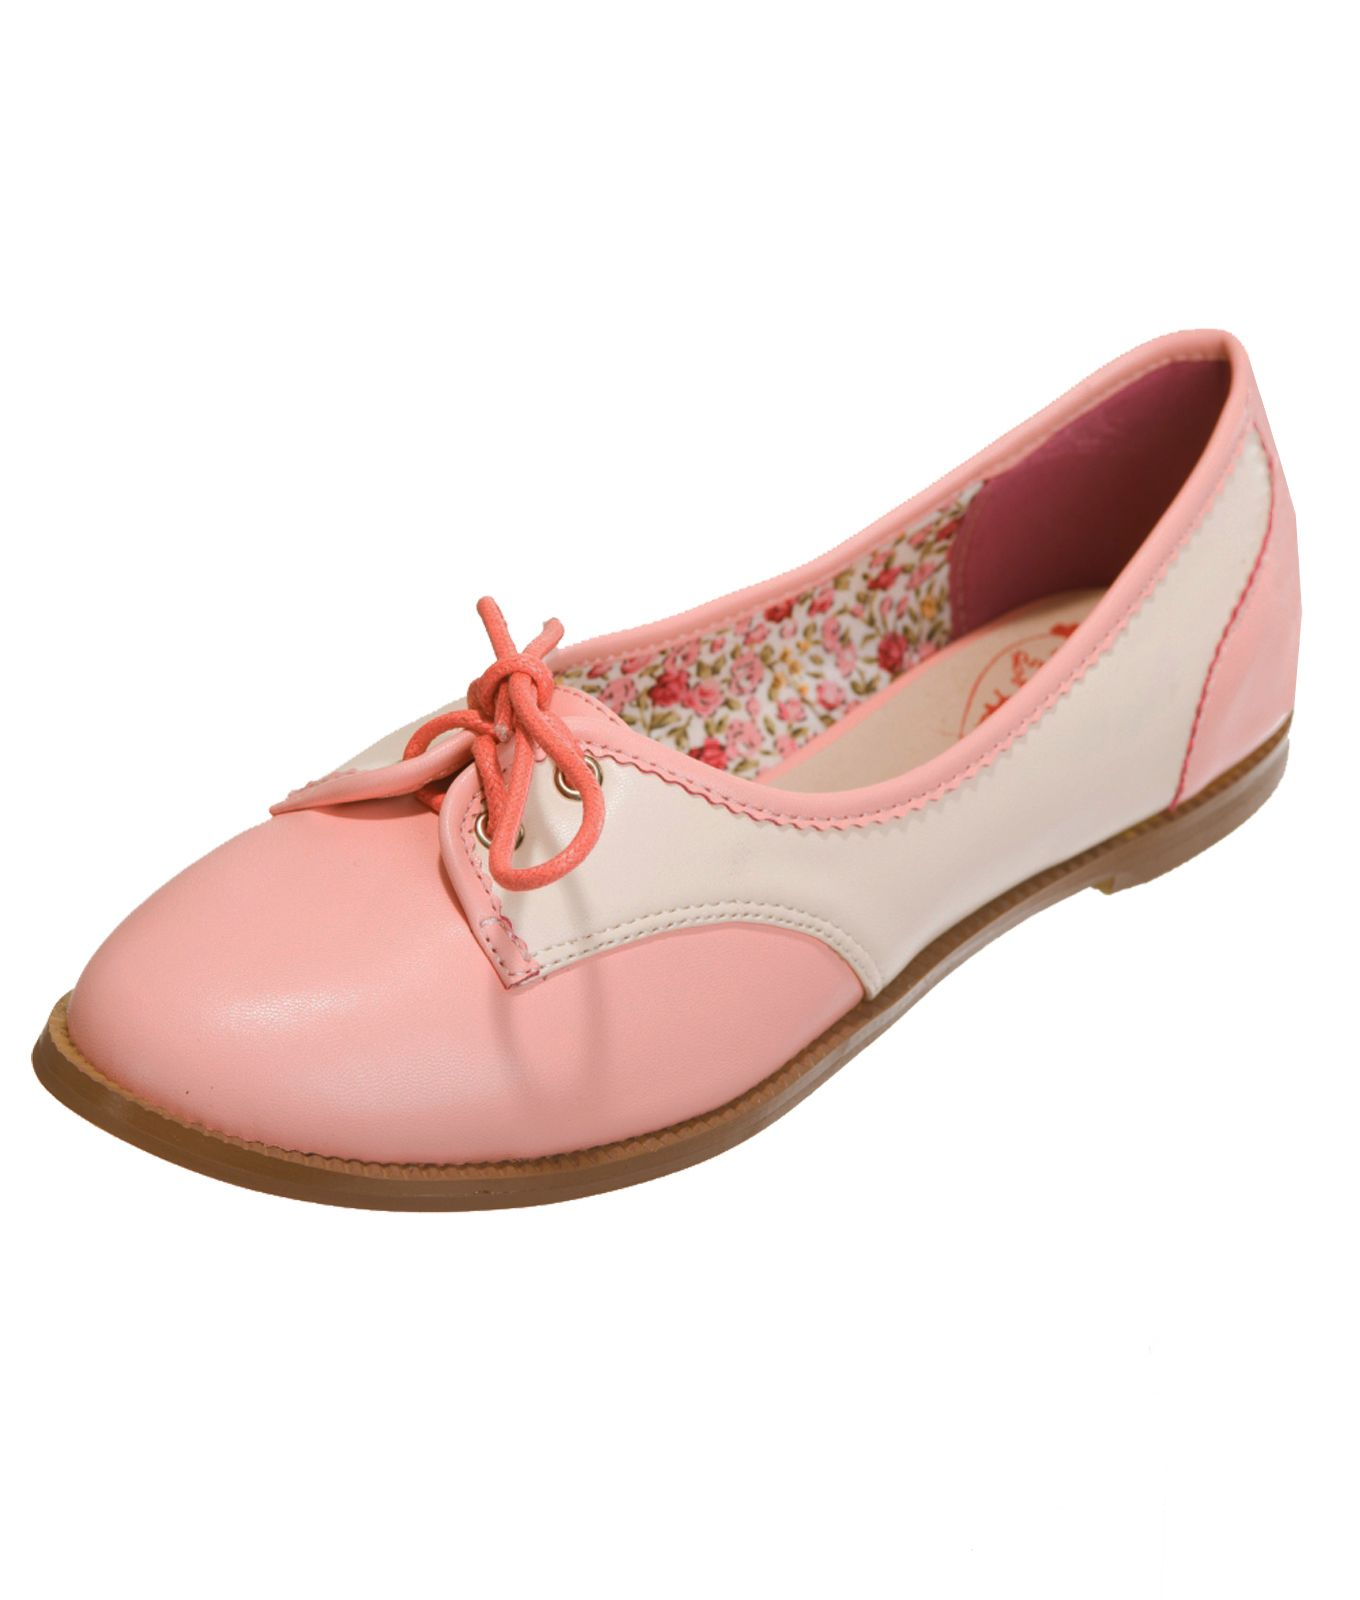 Banned Retro 50s Rockabilly Pink Cream Flats